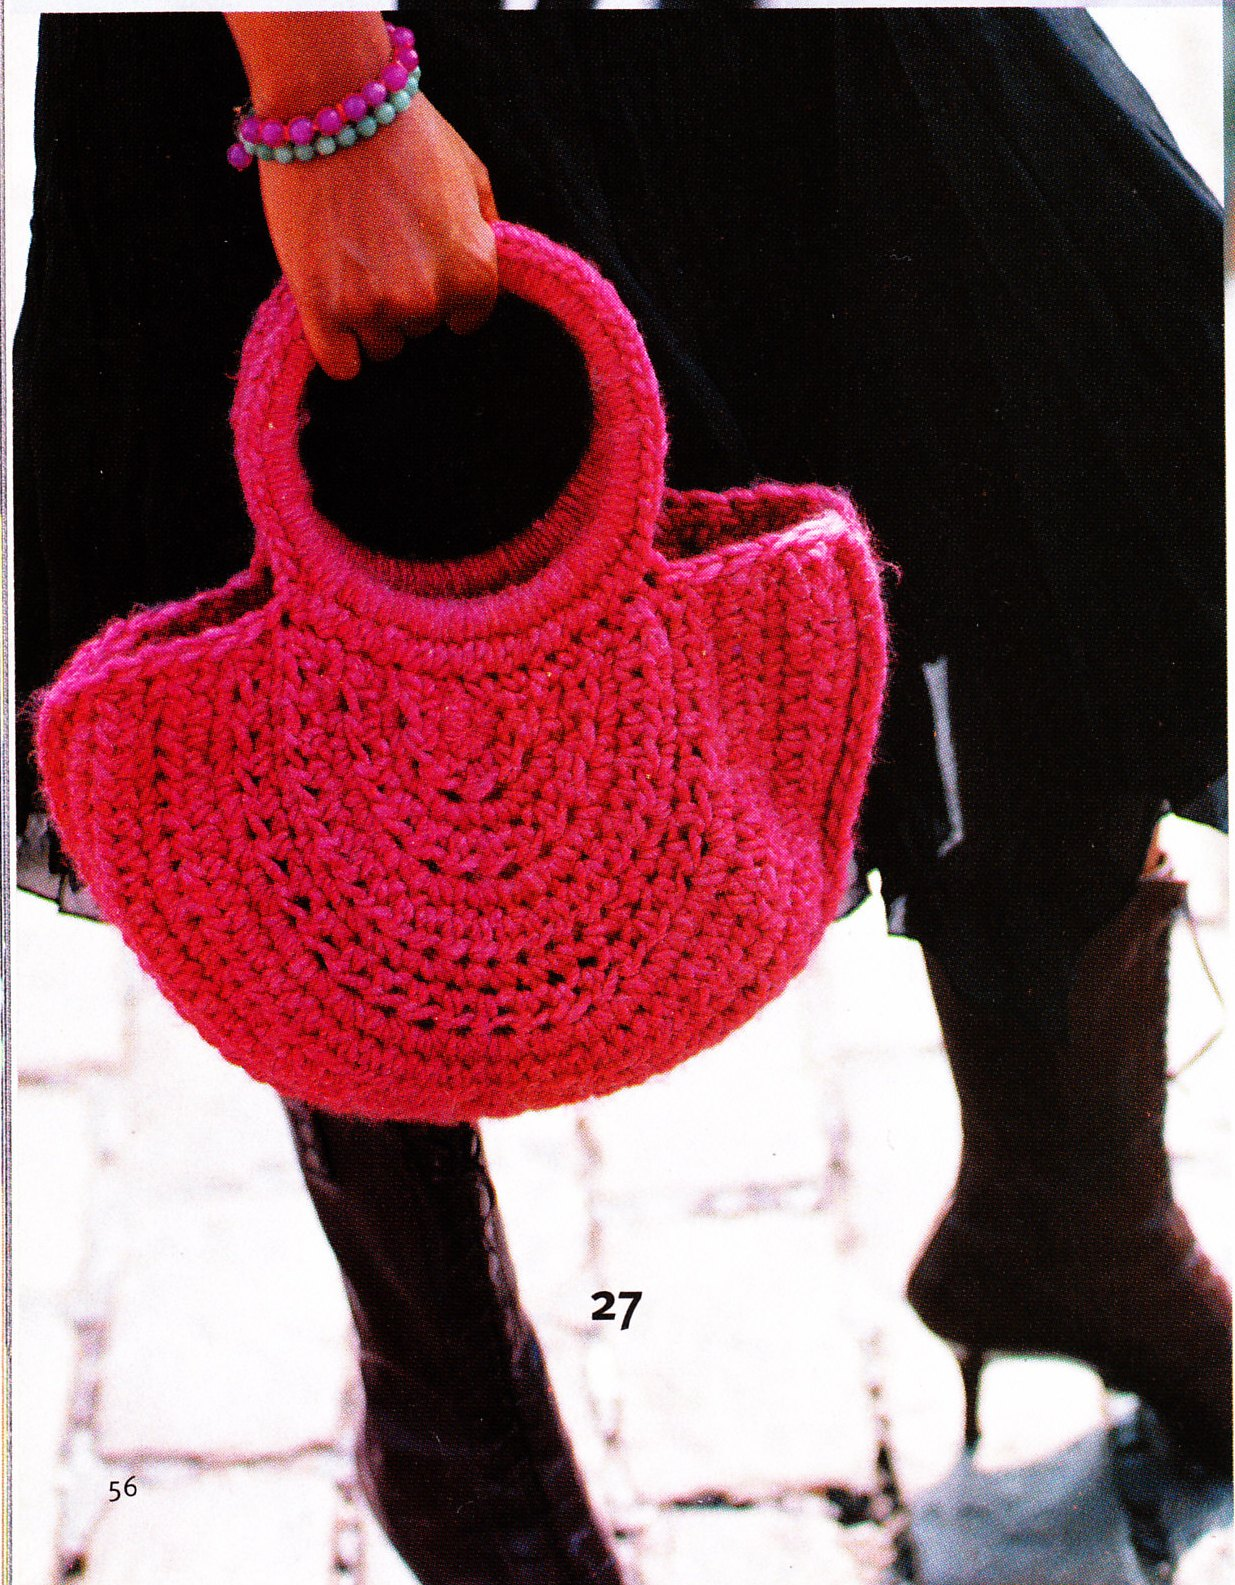 Crochet Circle Bag : Published March 18, 2011 at 1235 ? 1585 in Been There, Designed That